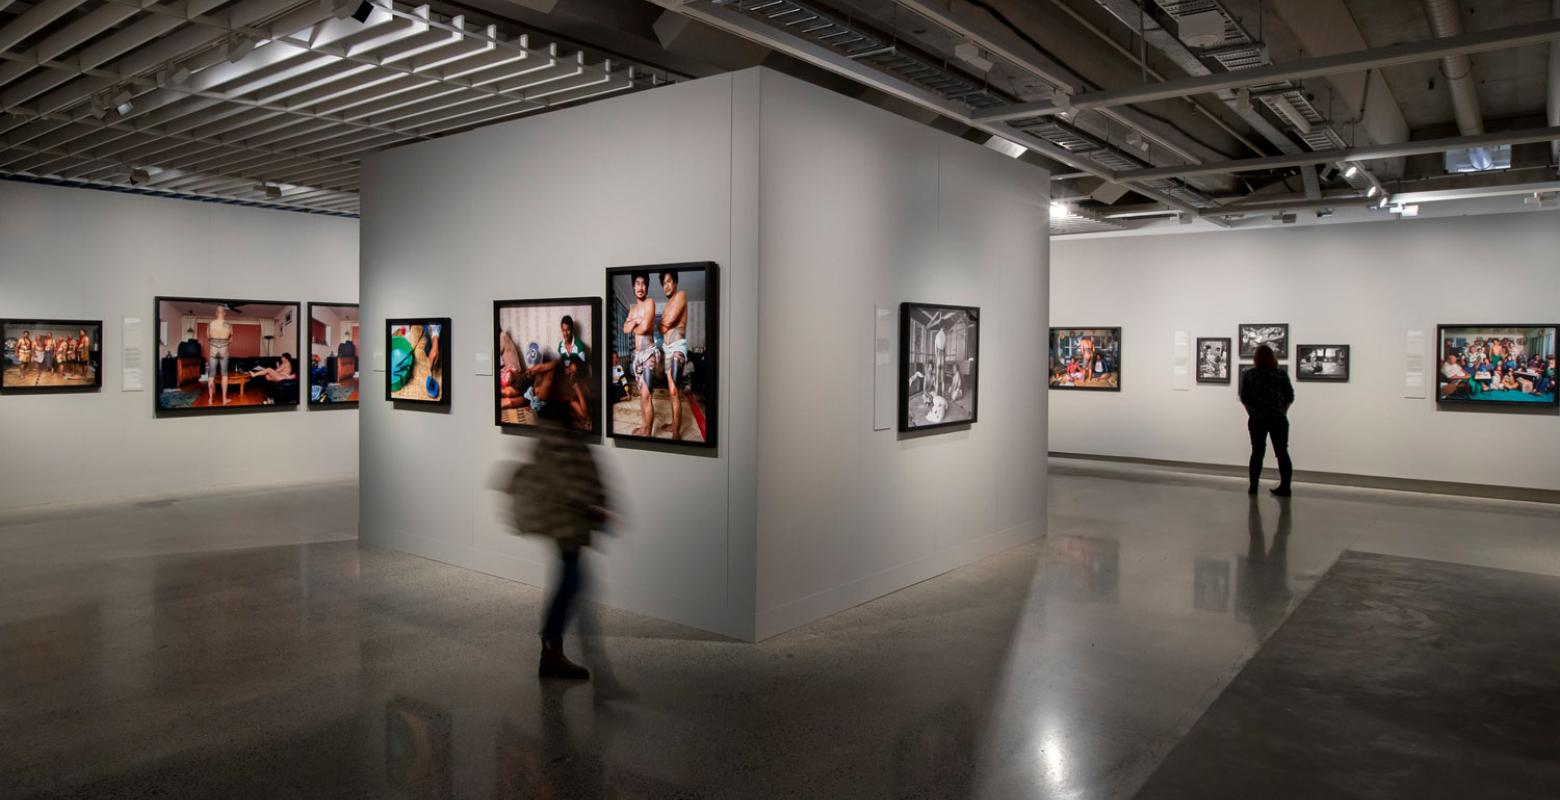 Visitors look at photos on gallery walls